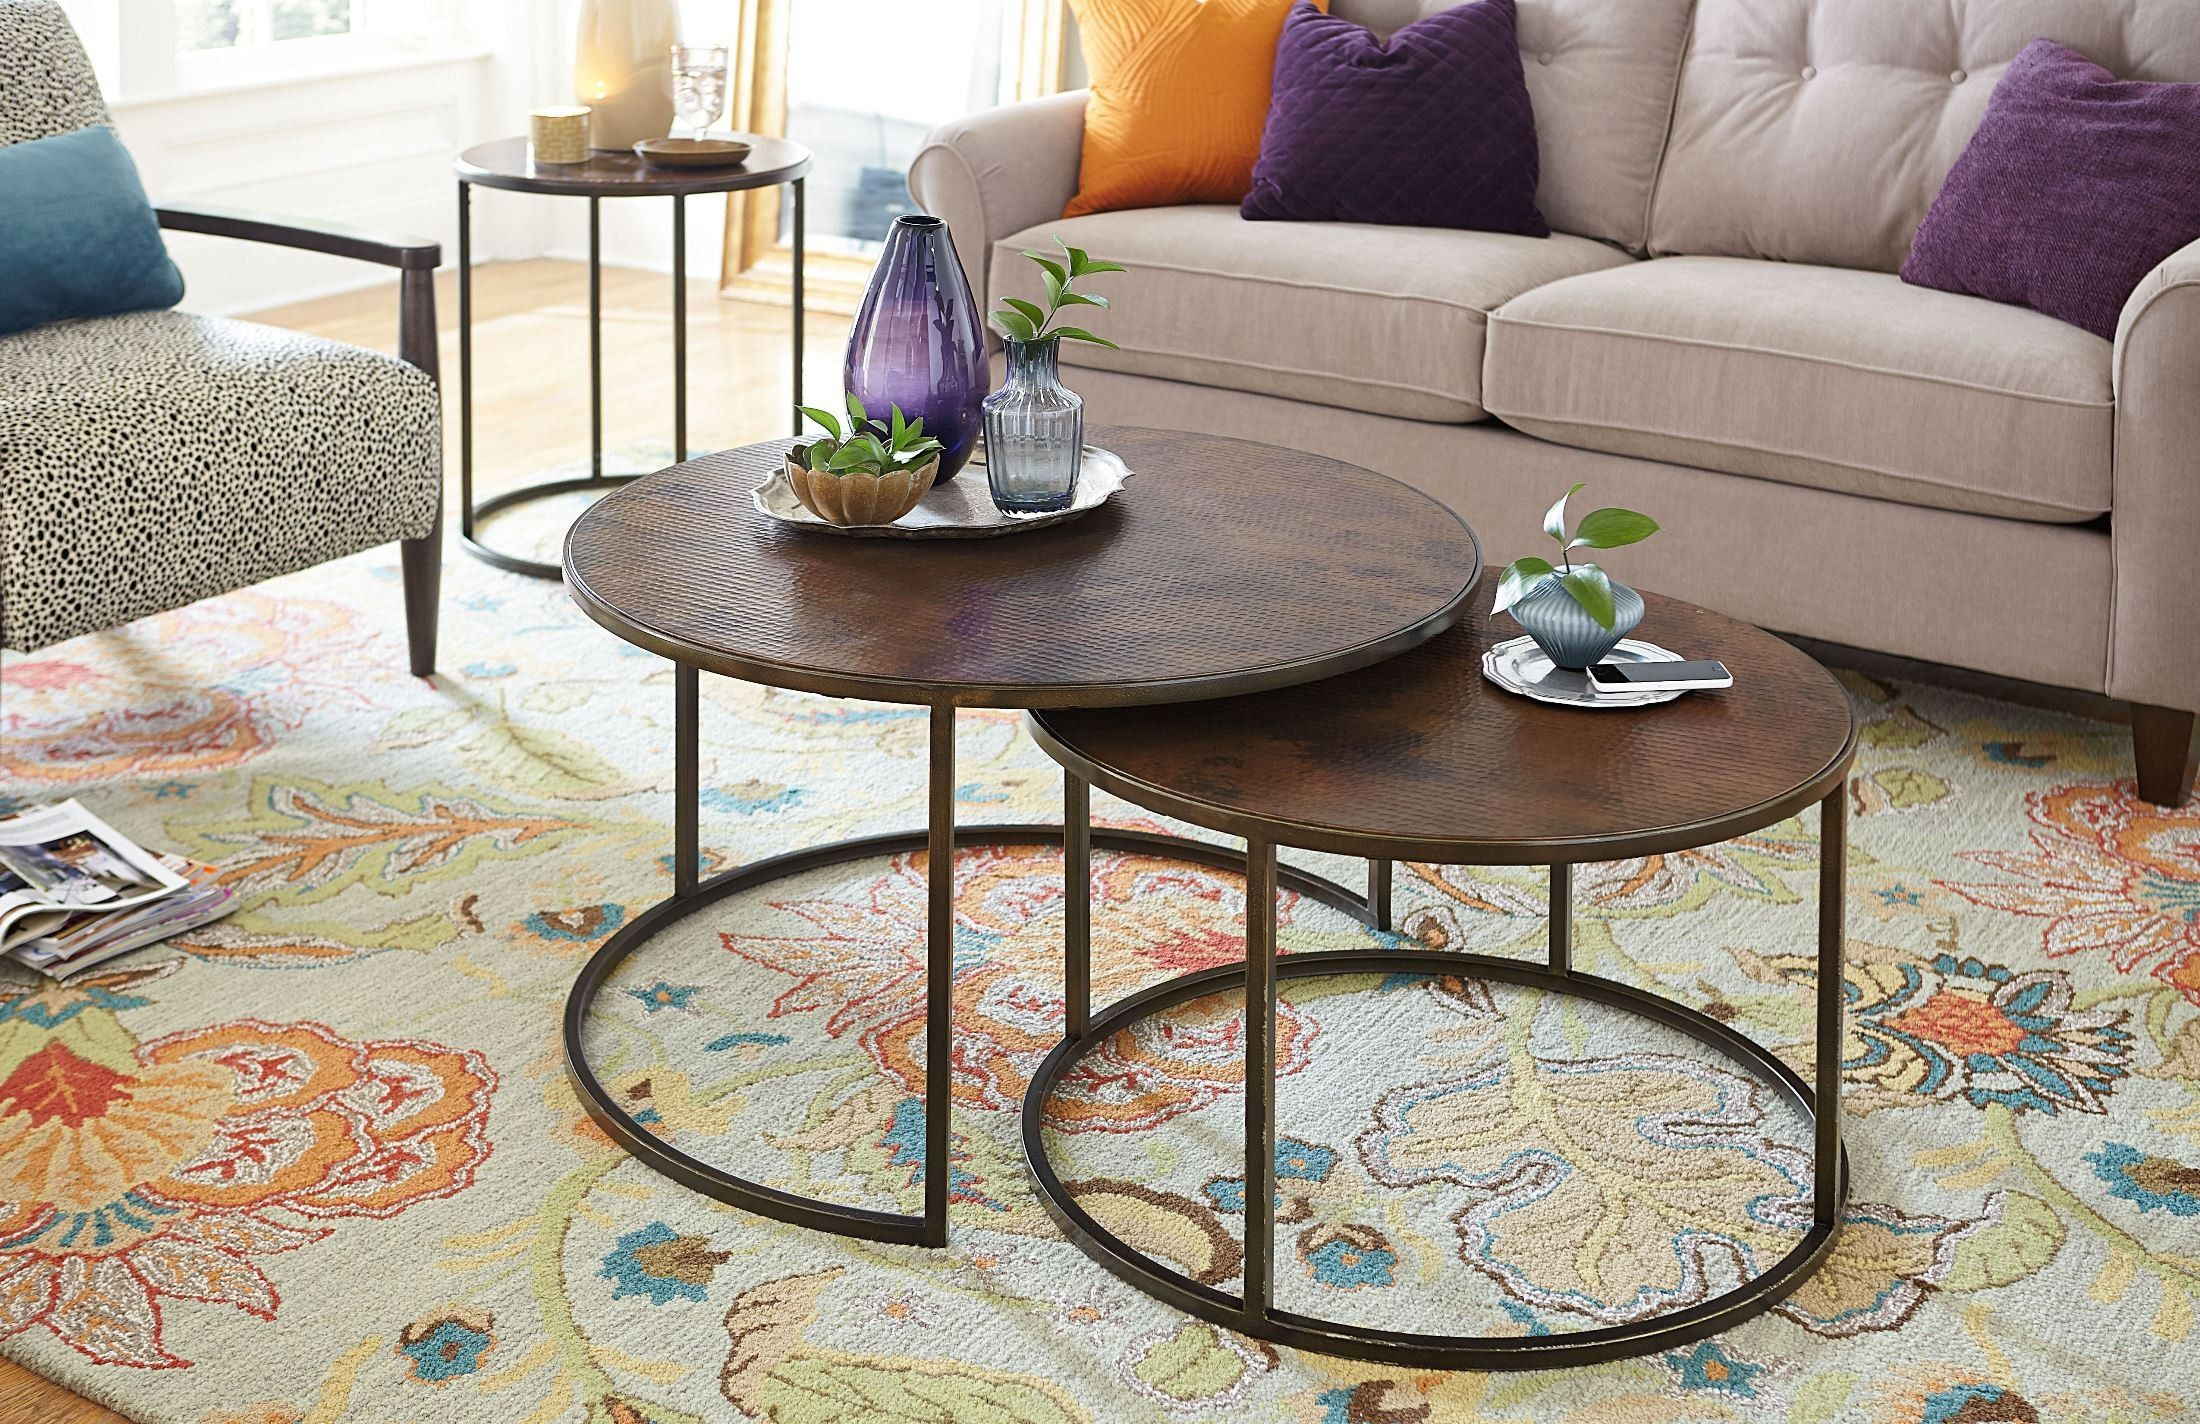 Sanford Round Occasional Table Set In 2021 Nesting Coffee Tables Coffee Table Setting Coffee Table Design [ 1424 x 2200 Pixel ]